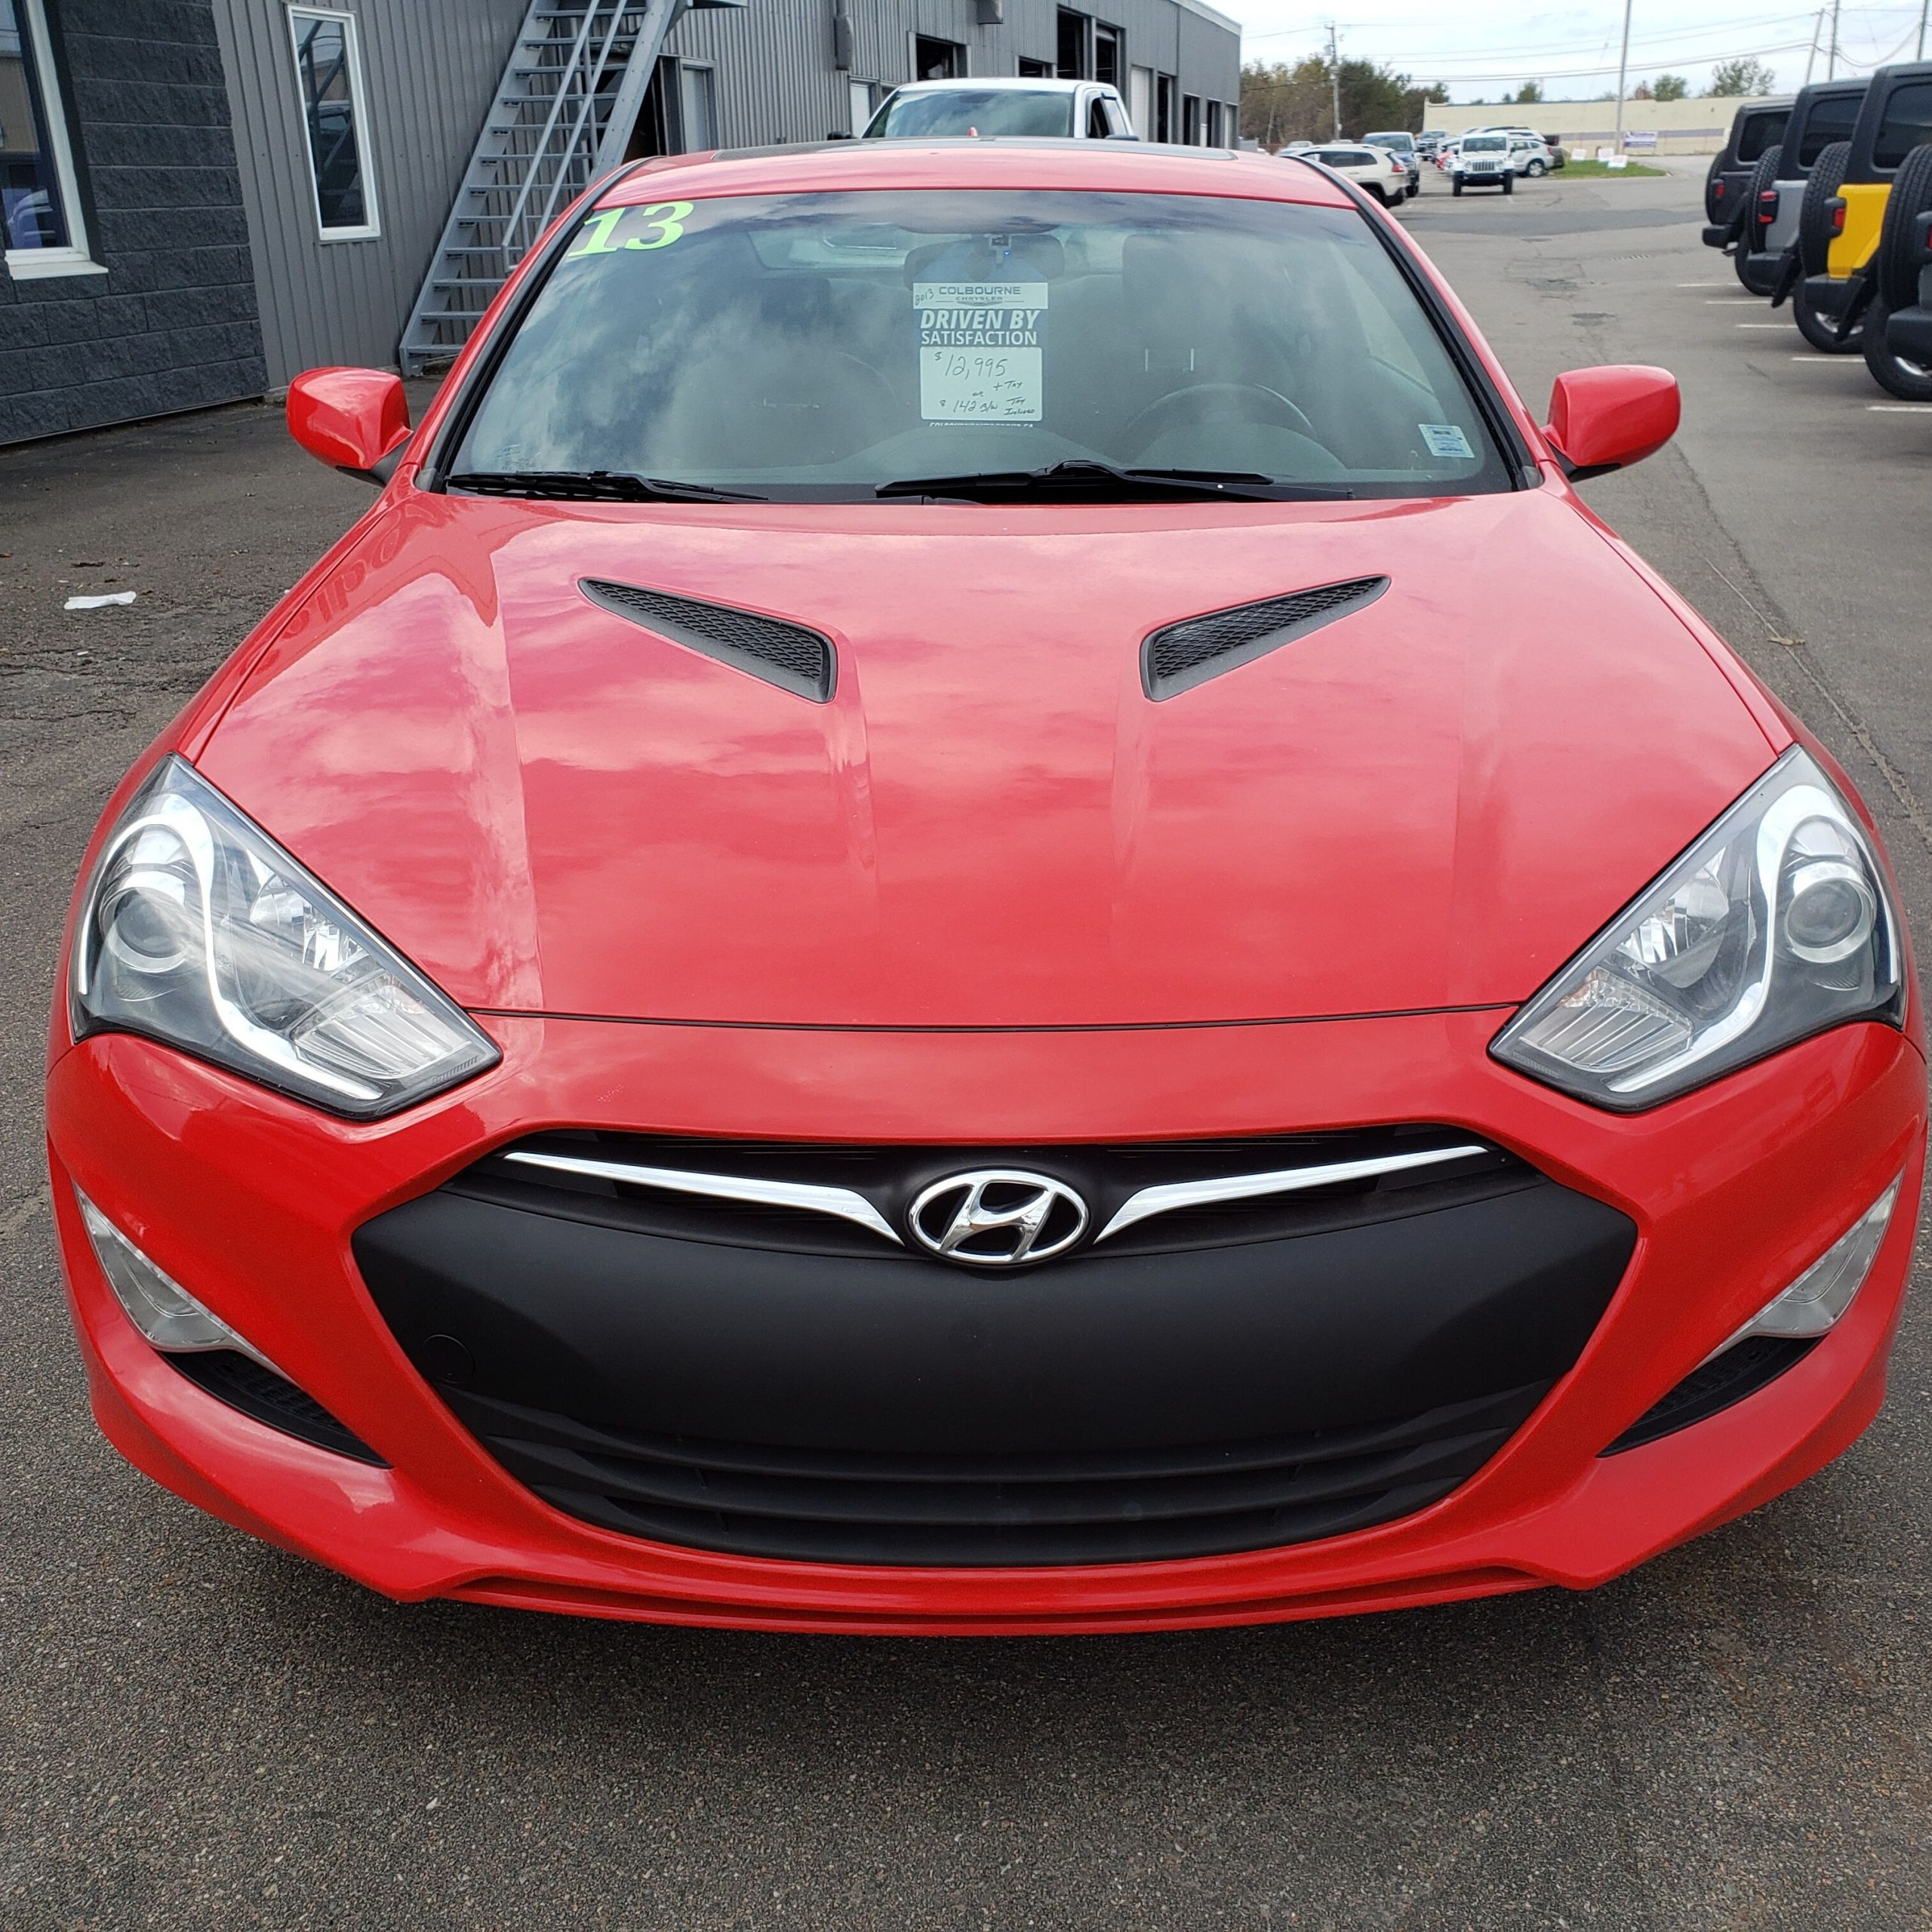 Used Hyundai Genesis for Sale Fresh Used 2013 Hyundai Genesis Coupe for Sale at Colbourne